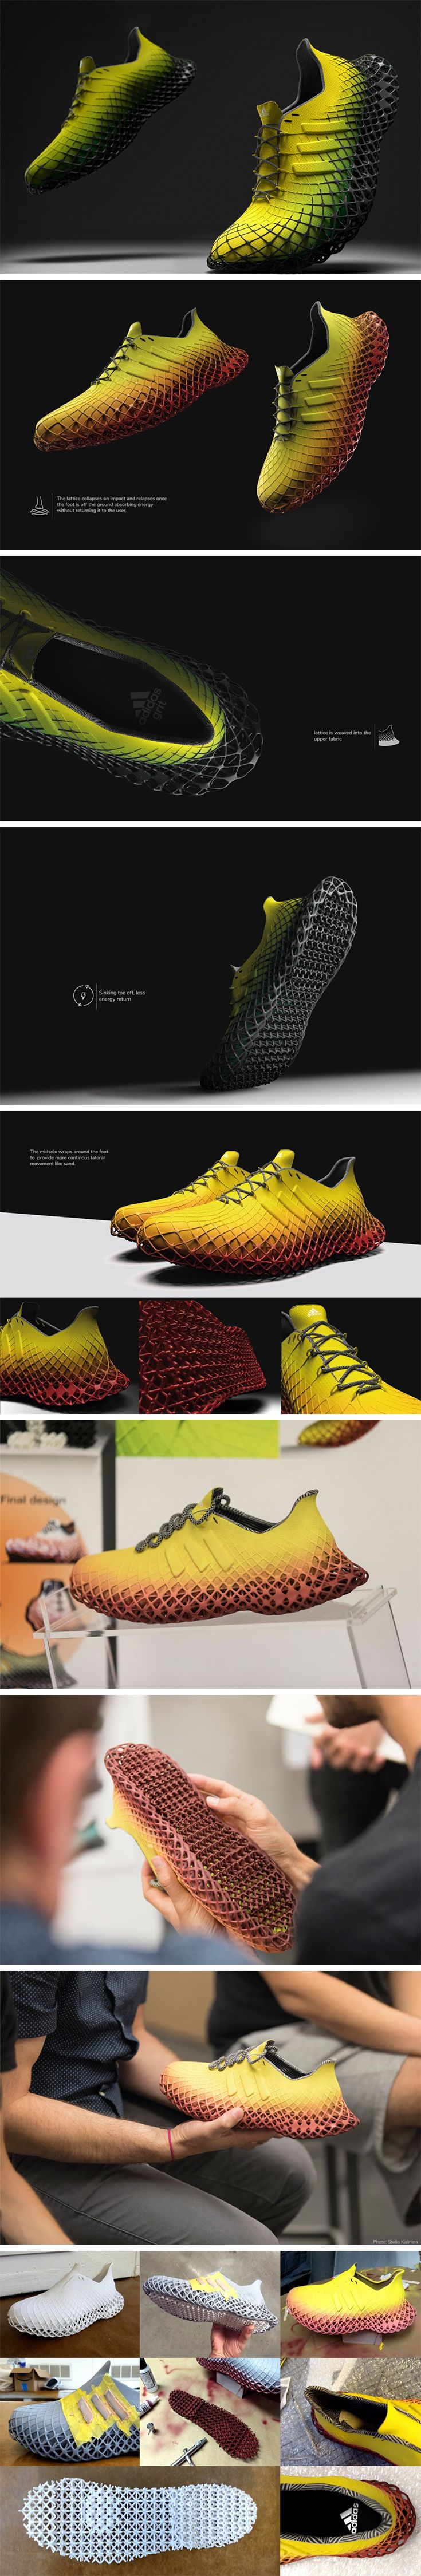 3D printed shoes are coming for sure. Designing for pure function and aesthetics, shoe production will not be hindered by molding/manufacturing capabilities, and the Adidas Grit seems like a prime example. Designed with a sole that is a shock-absorber in itself, the Grit has a design so mesmeric and unique, you can't really tell where the midsole or the outsole begins on the shoe.